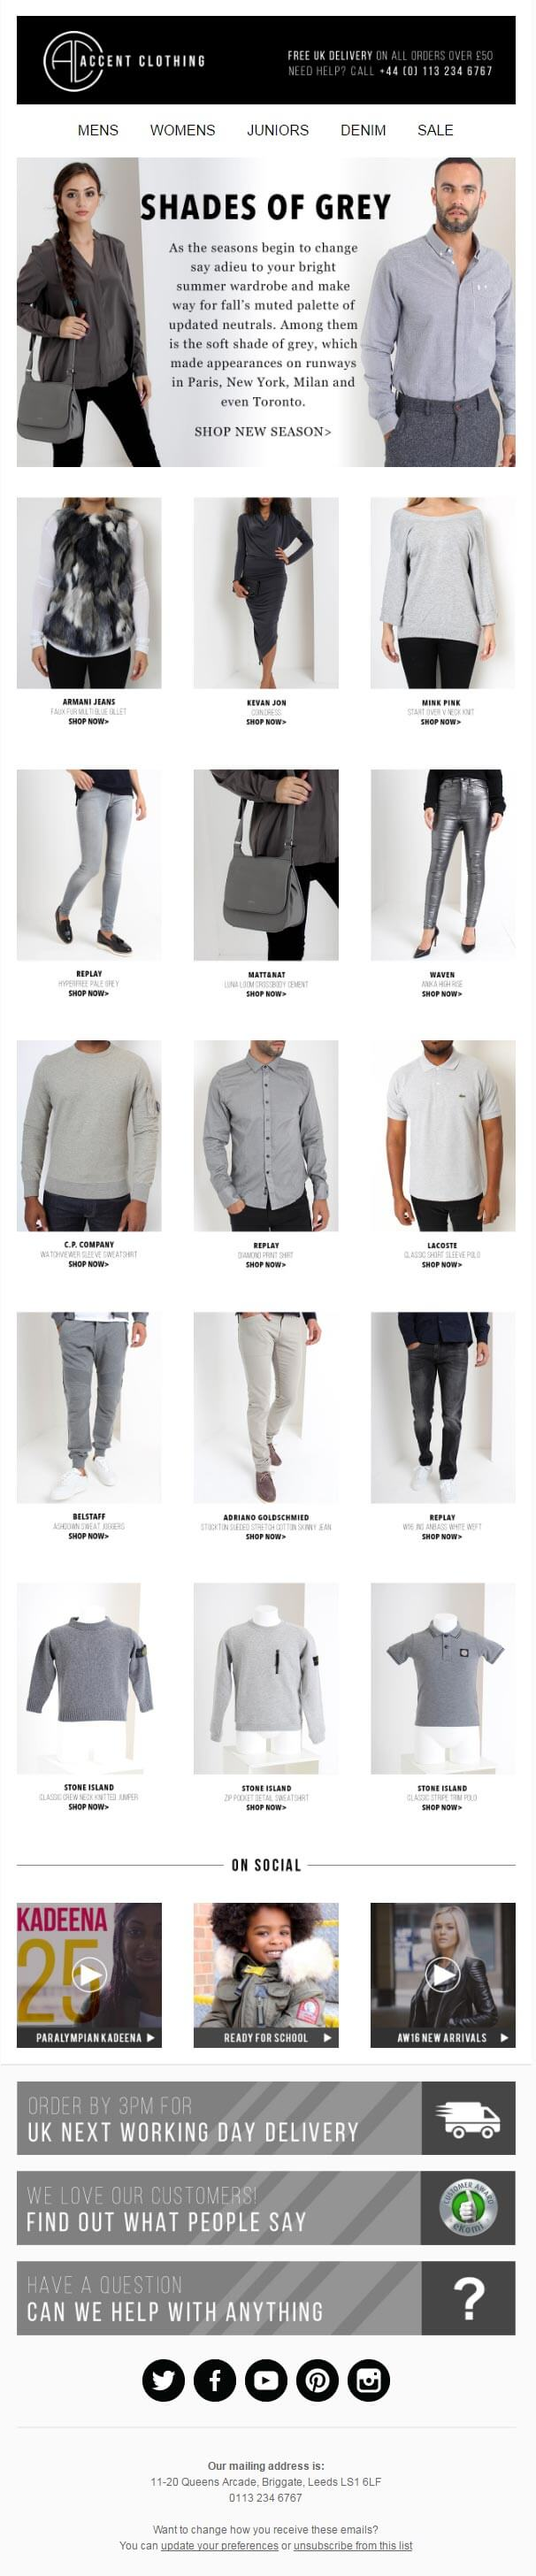 Seasonal Email Templates_Accent-Clothing_Winter